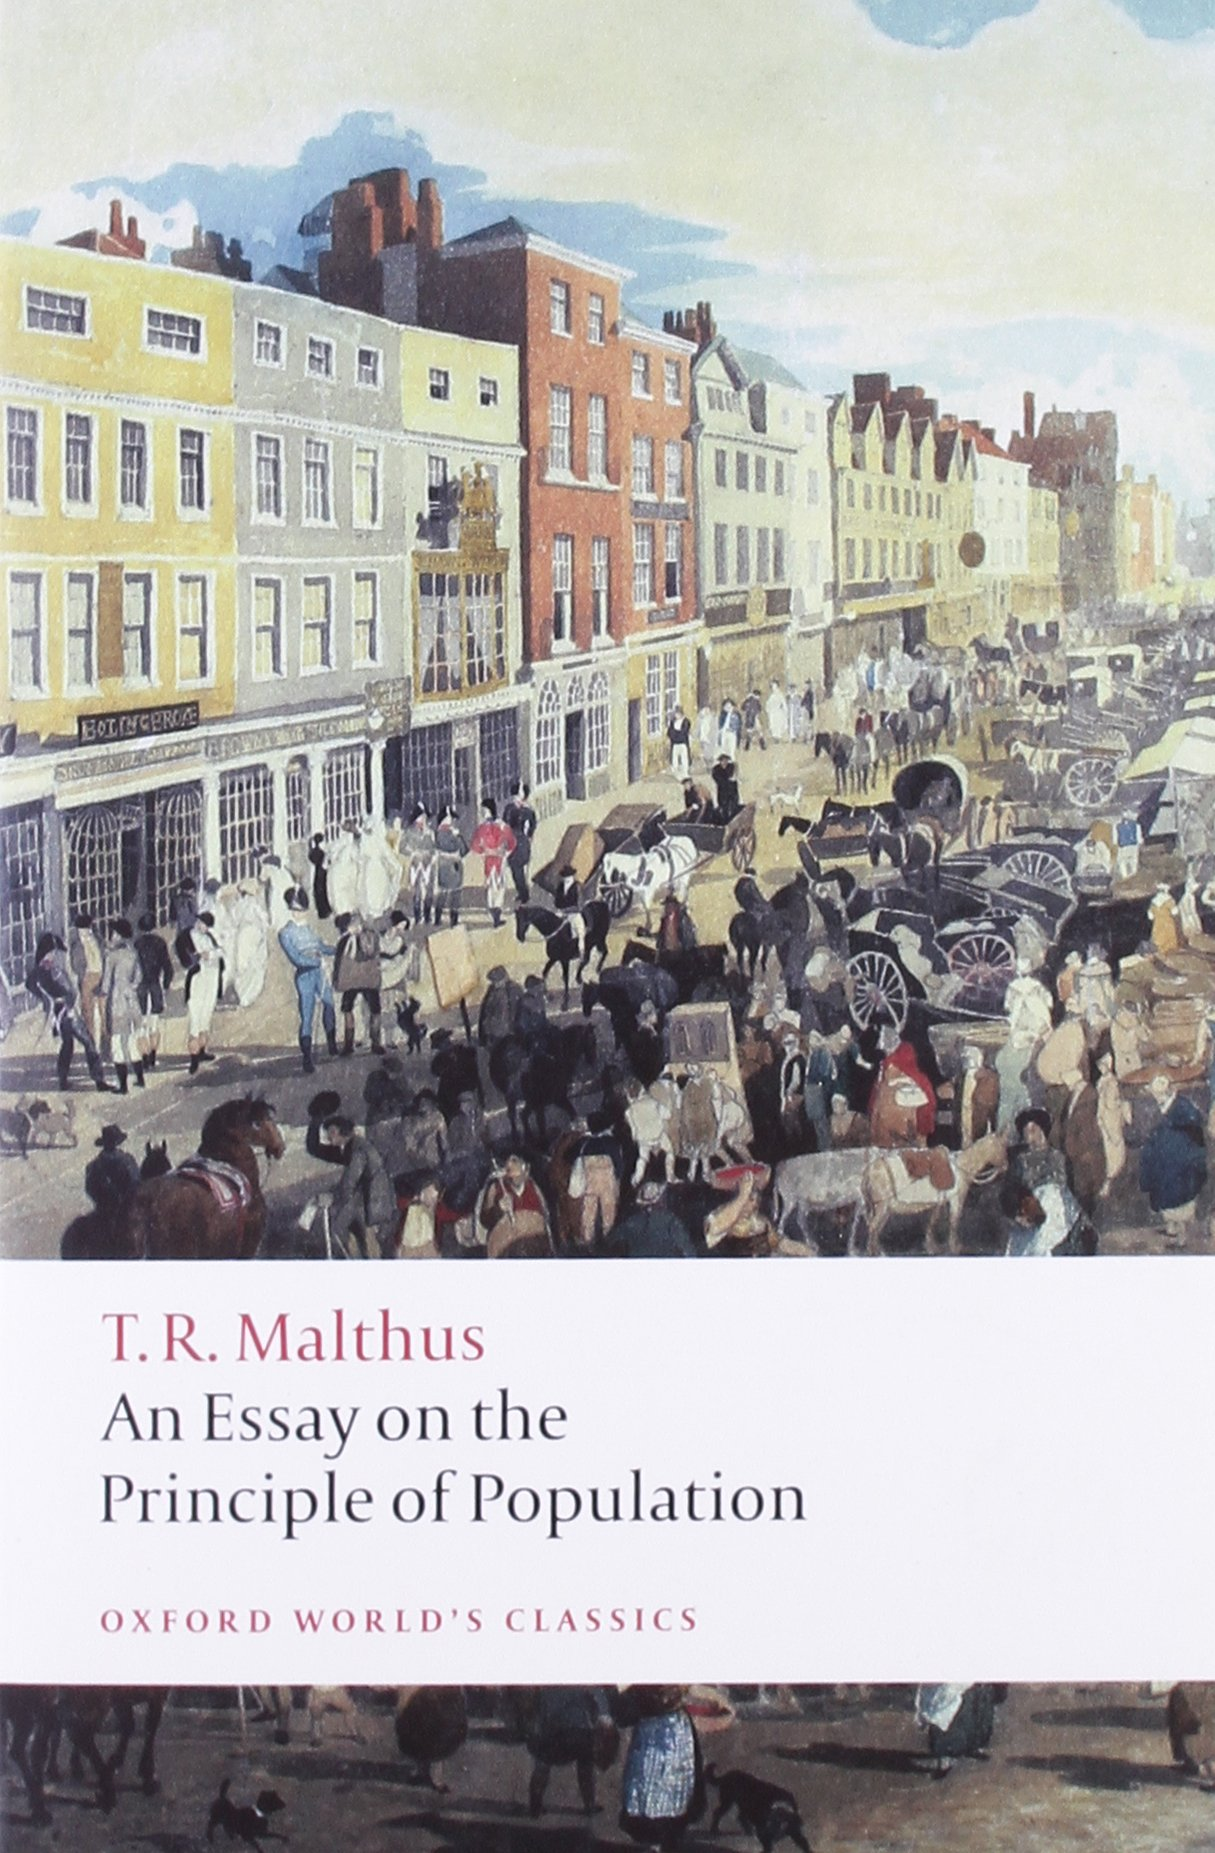 an essay on the principle of population oxford world s classics an essay on the principle of population oxford world s classics co uk thomas malthus geoffrey gilbert 9780199540457 books